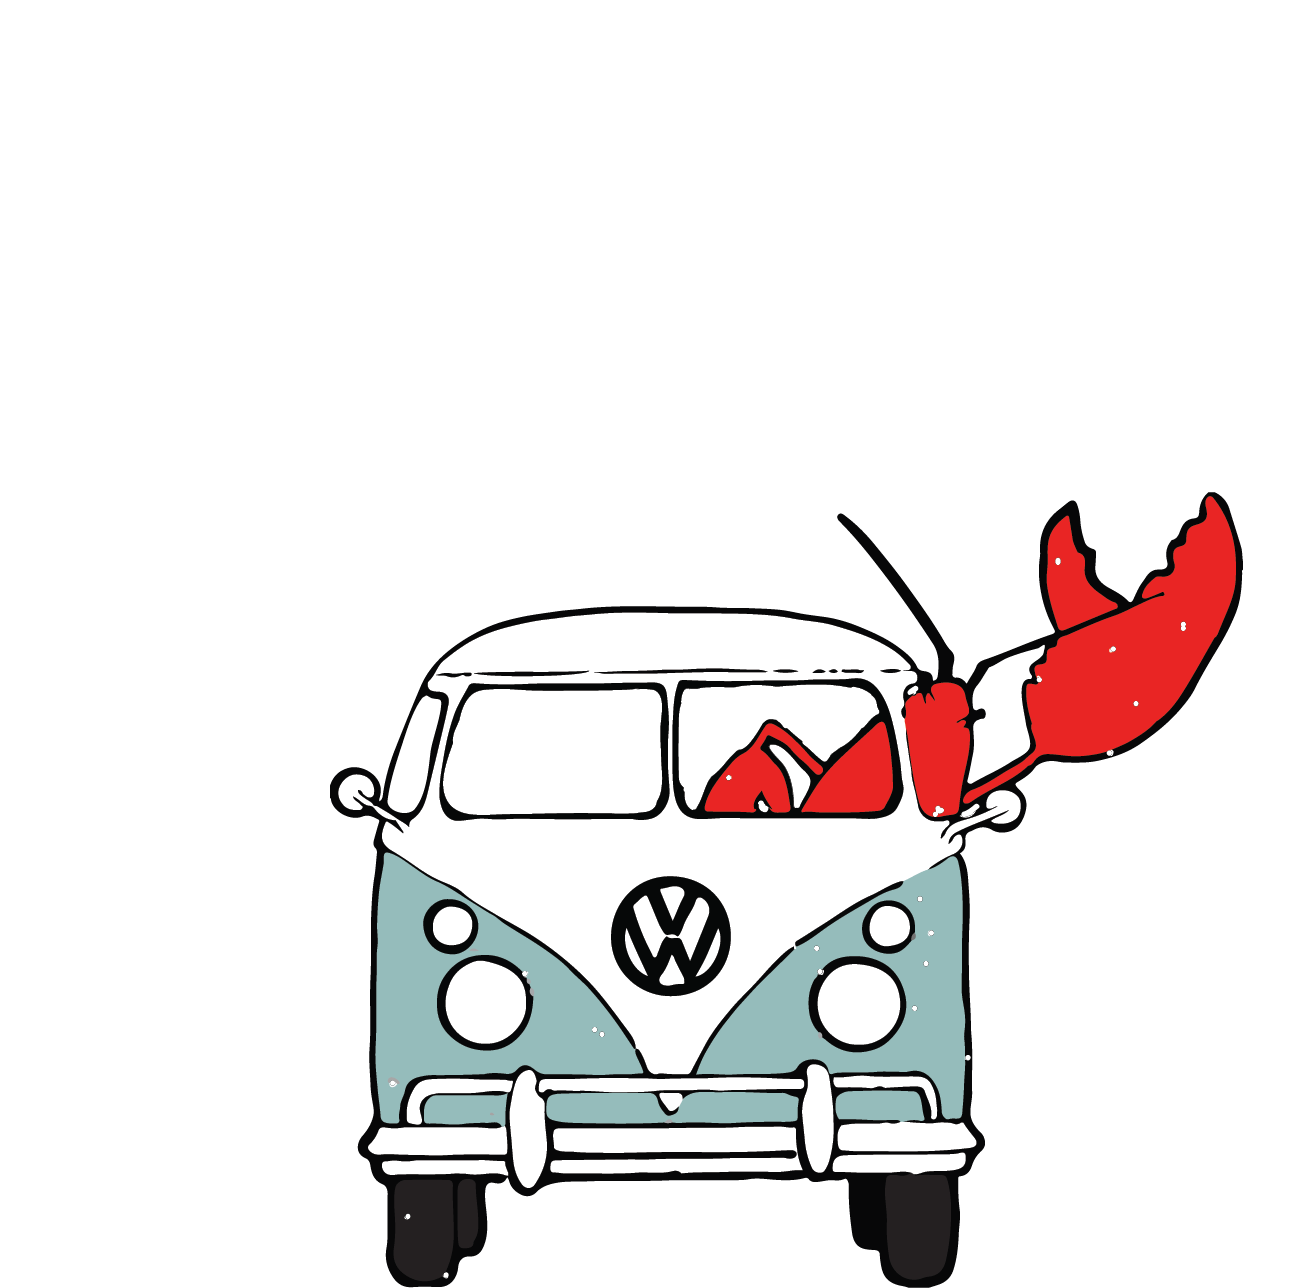 1315x1288 the maine photo booth bus co vintage photo booth charm in a vw bus